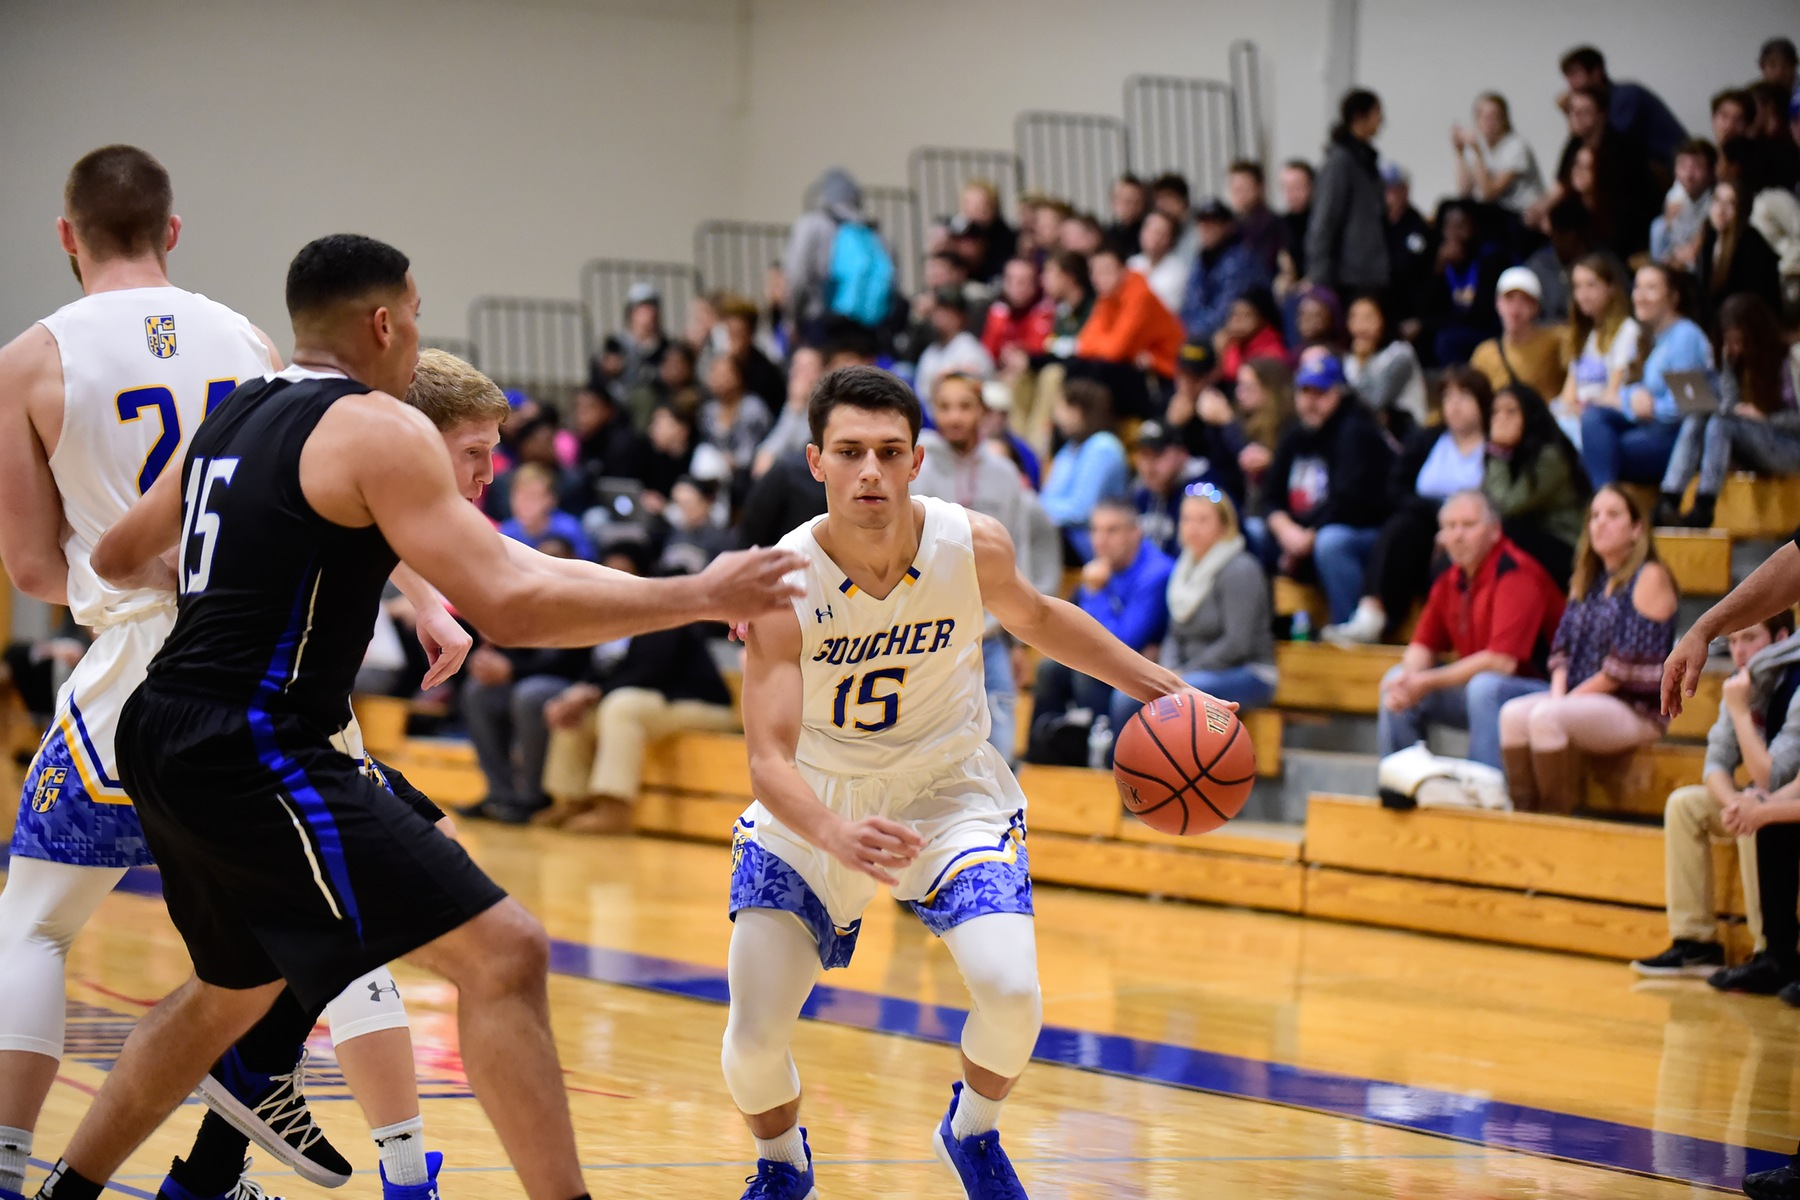 Men's Basketball Defeated by Salisbury, 101-71